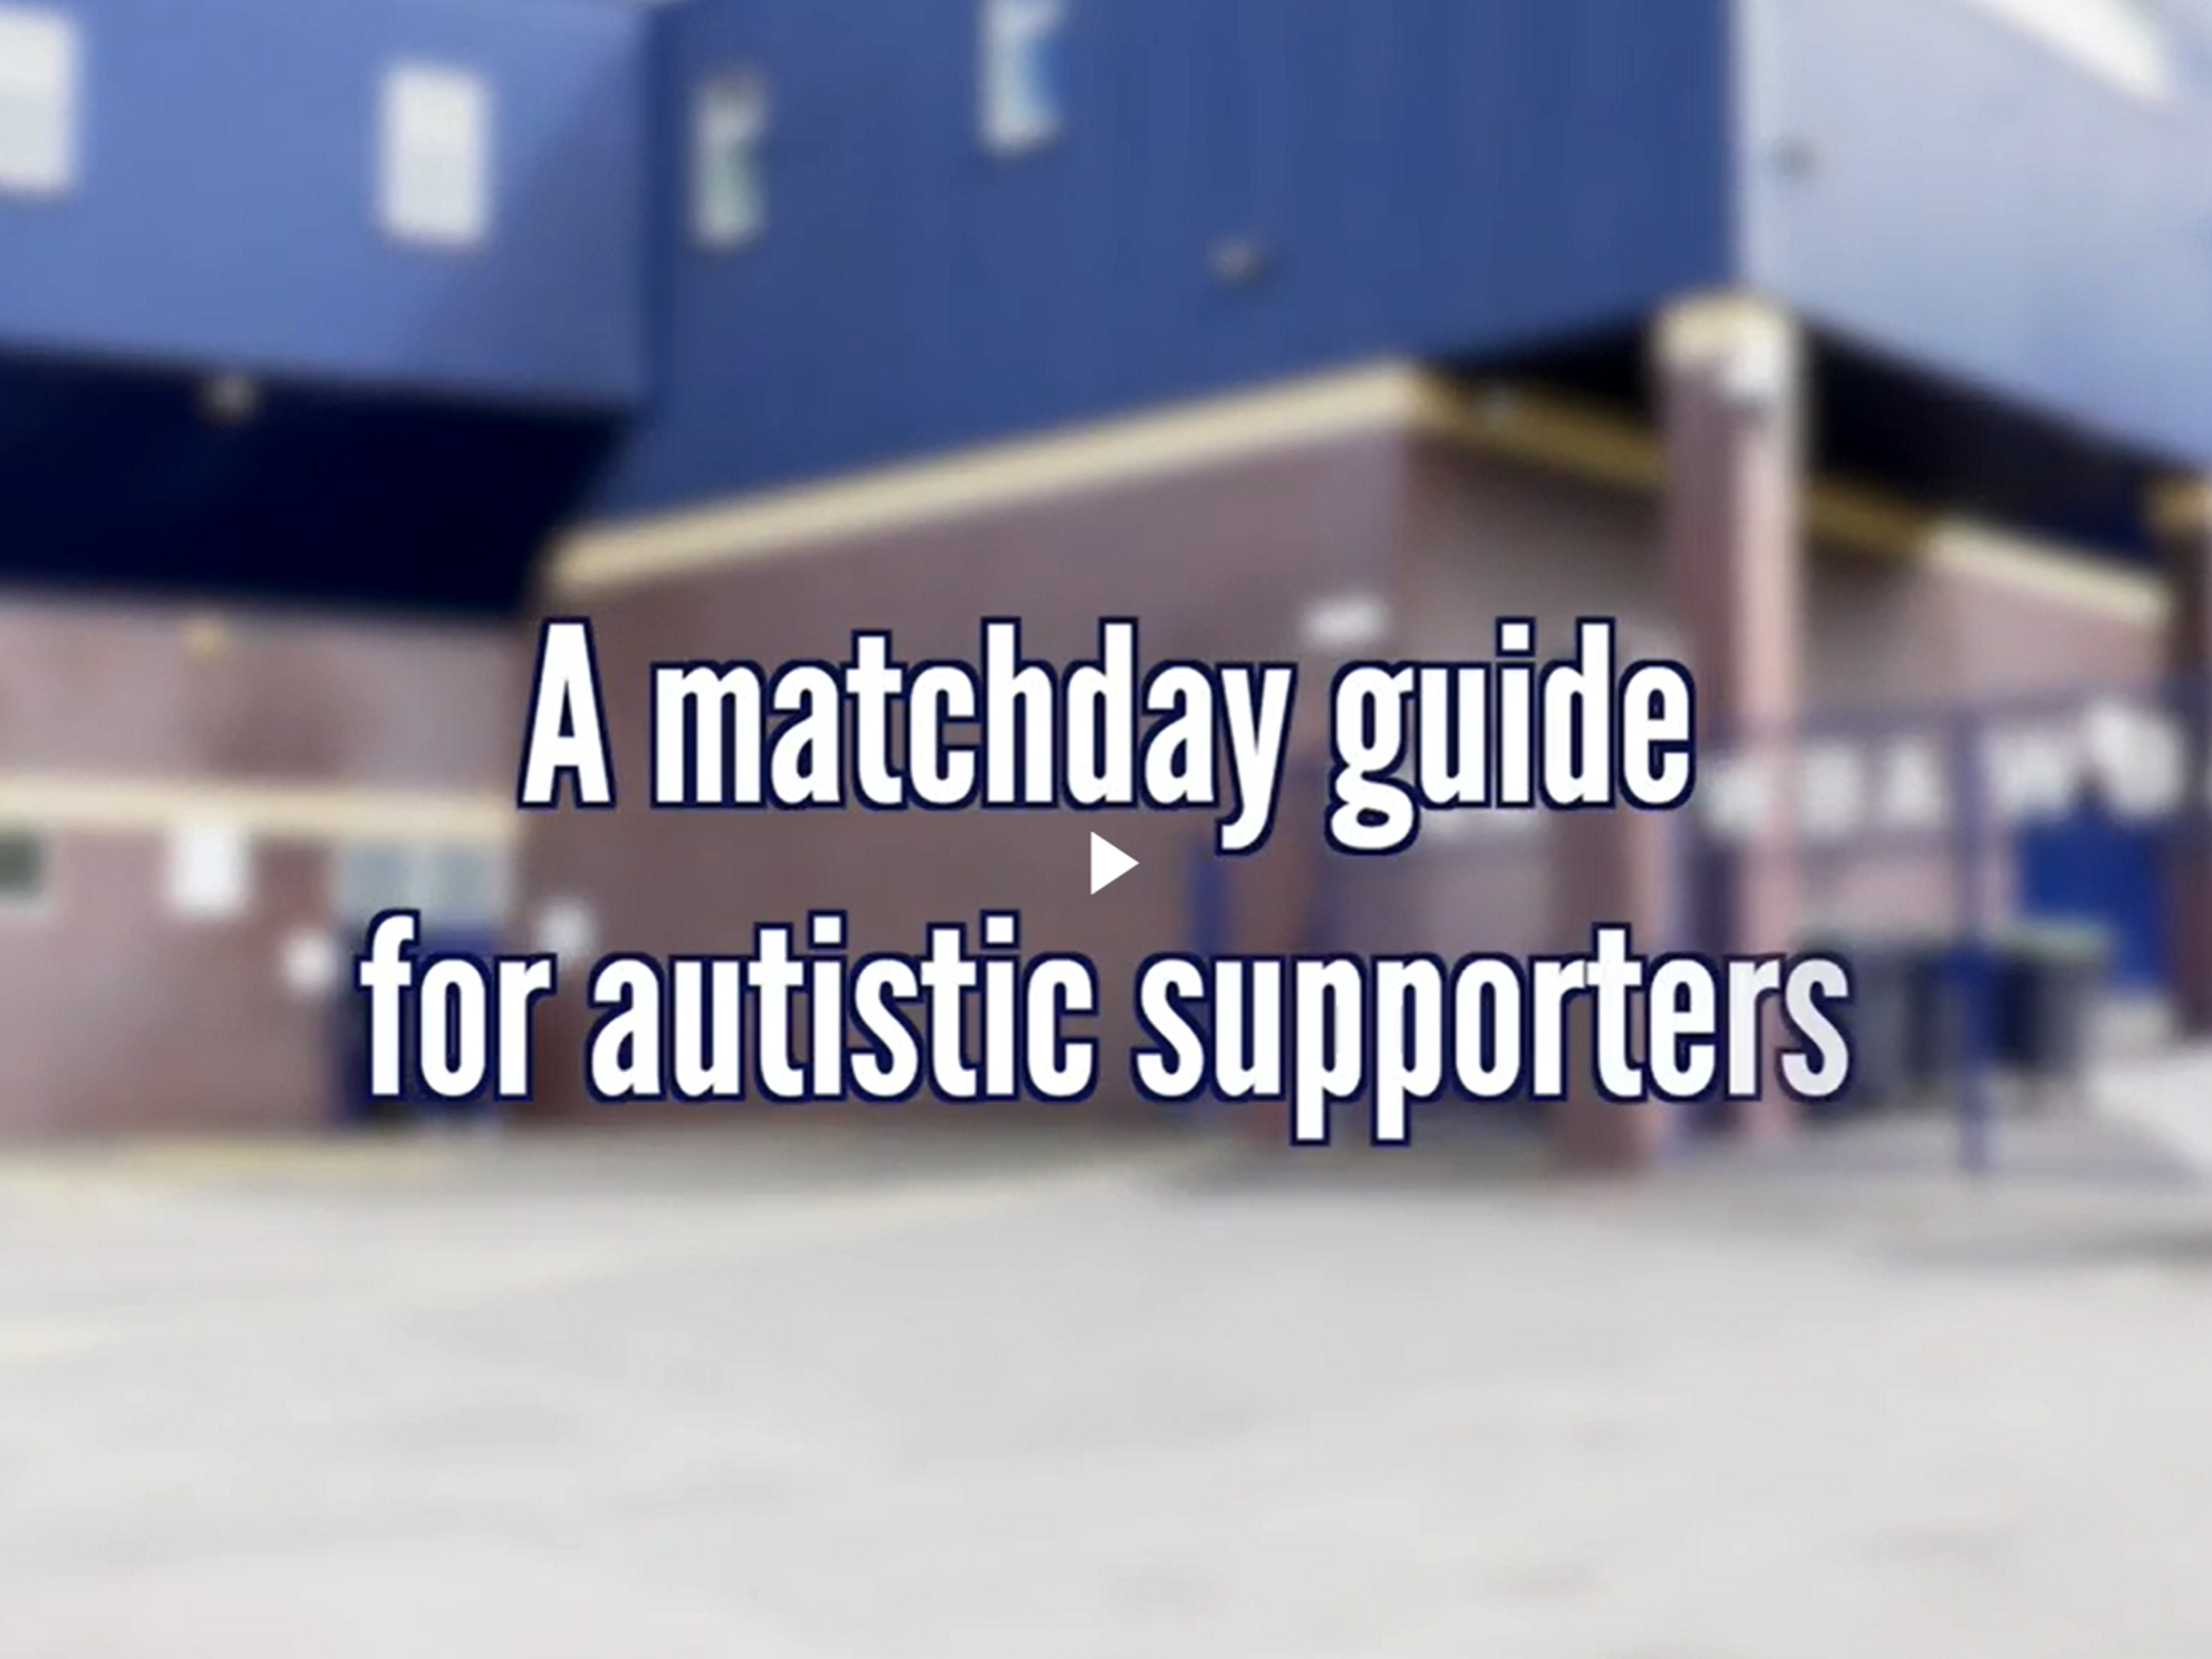 Matchday experience for supporters with autism